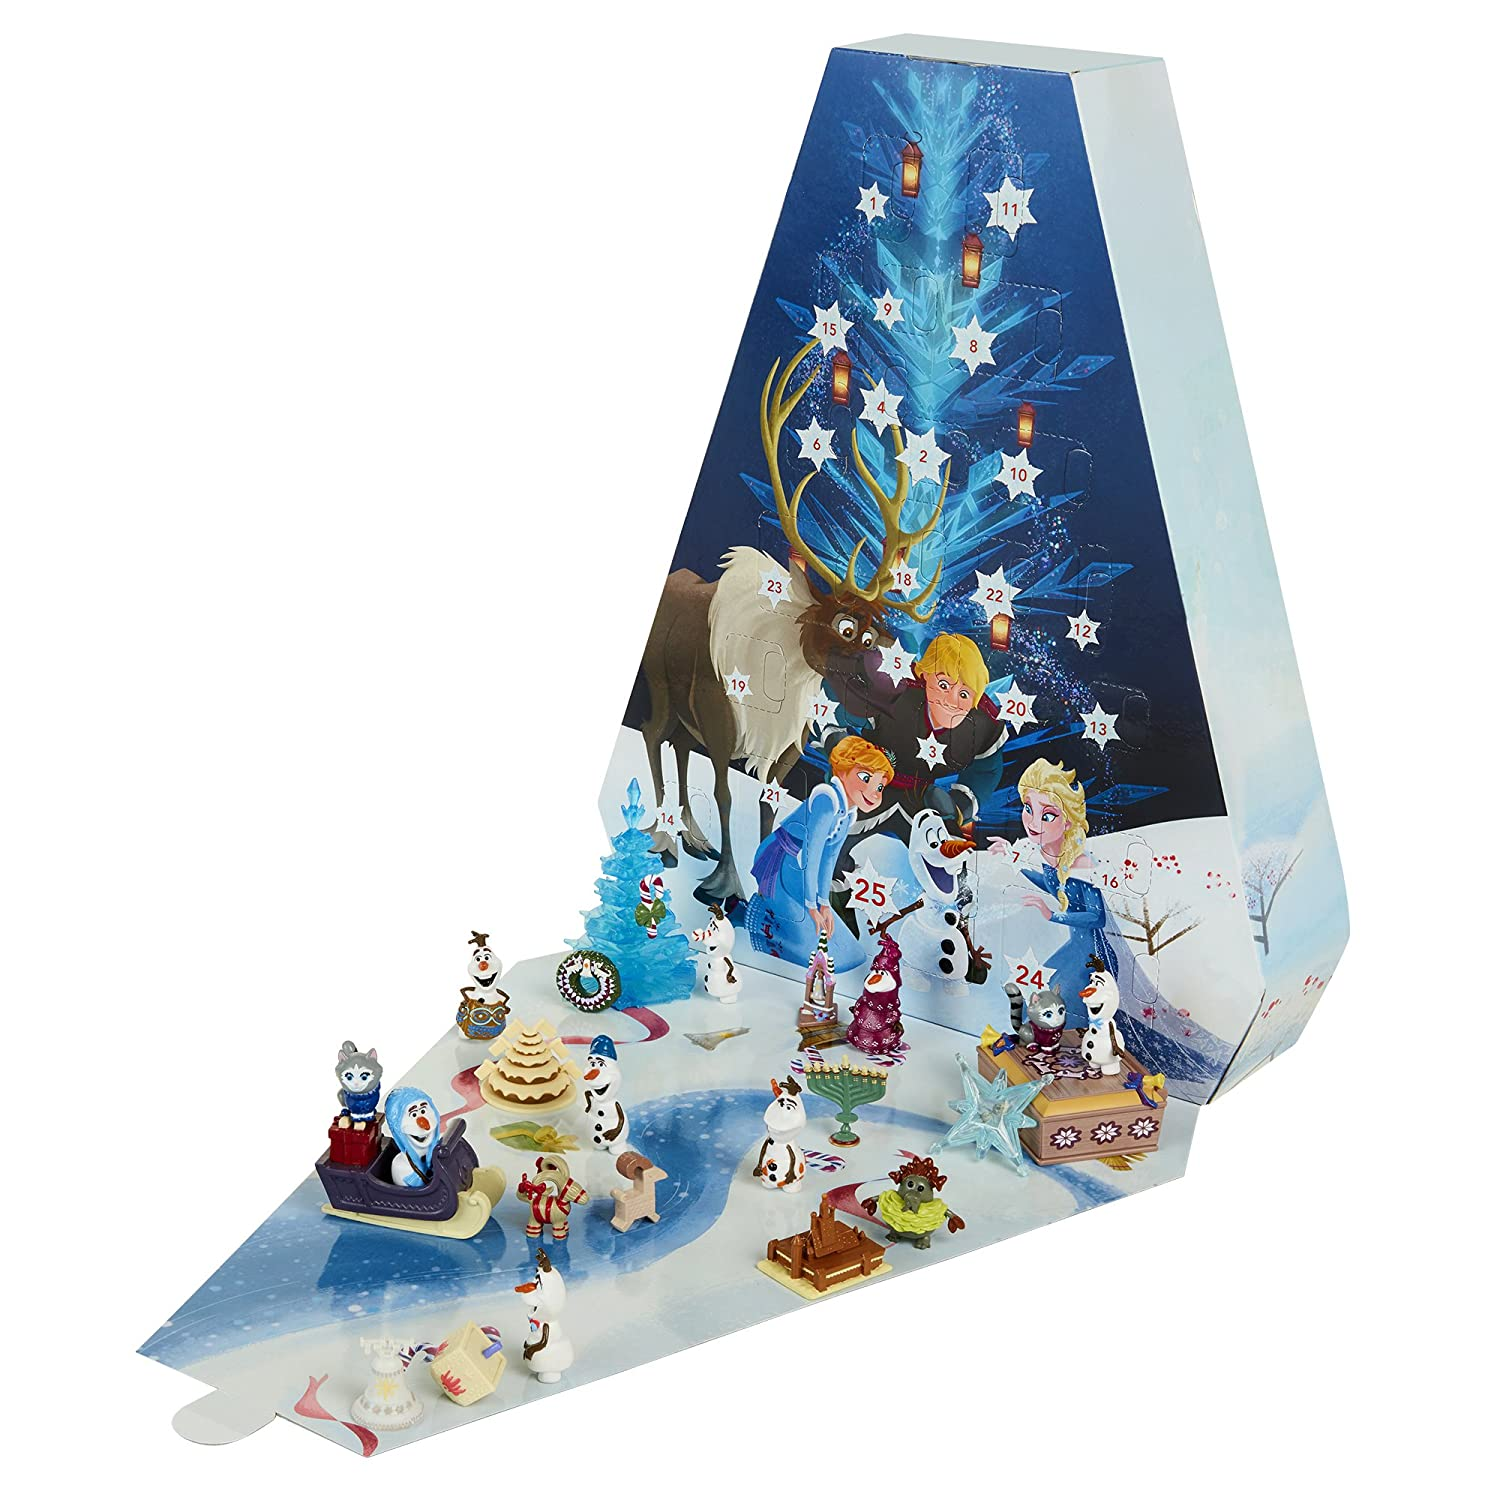 Disney Frozen Olaf's Frozen Adventure Advent Calendar